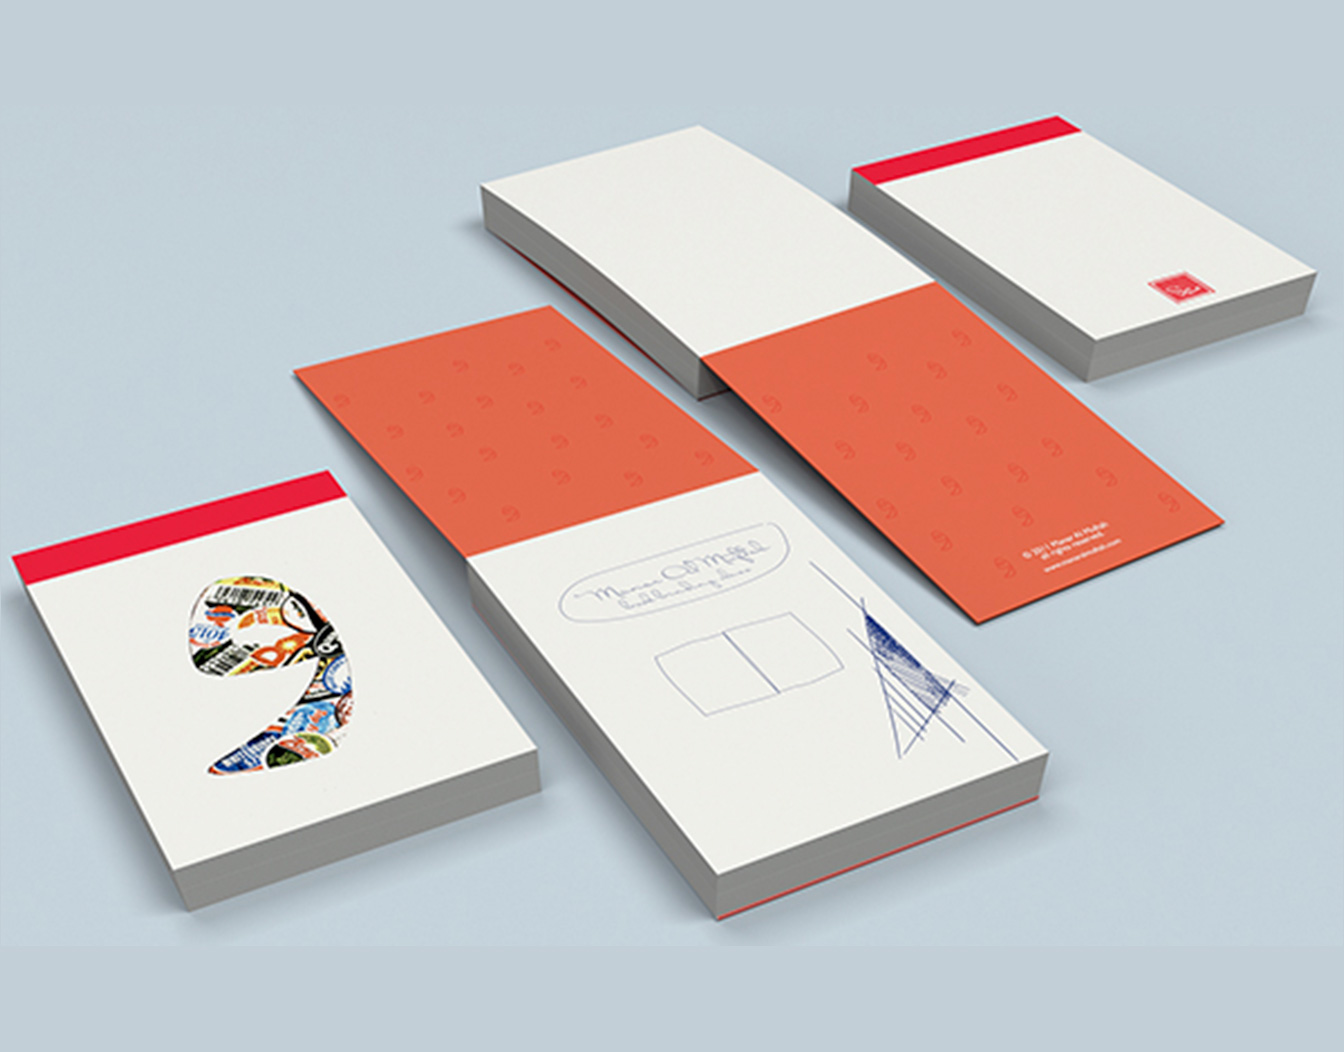 A6 notepads with open cover